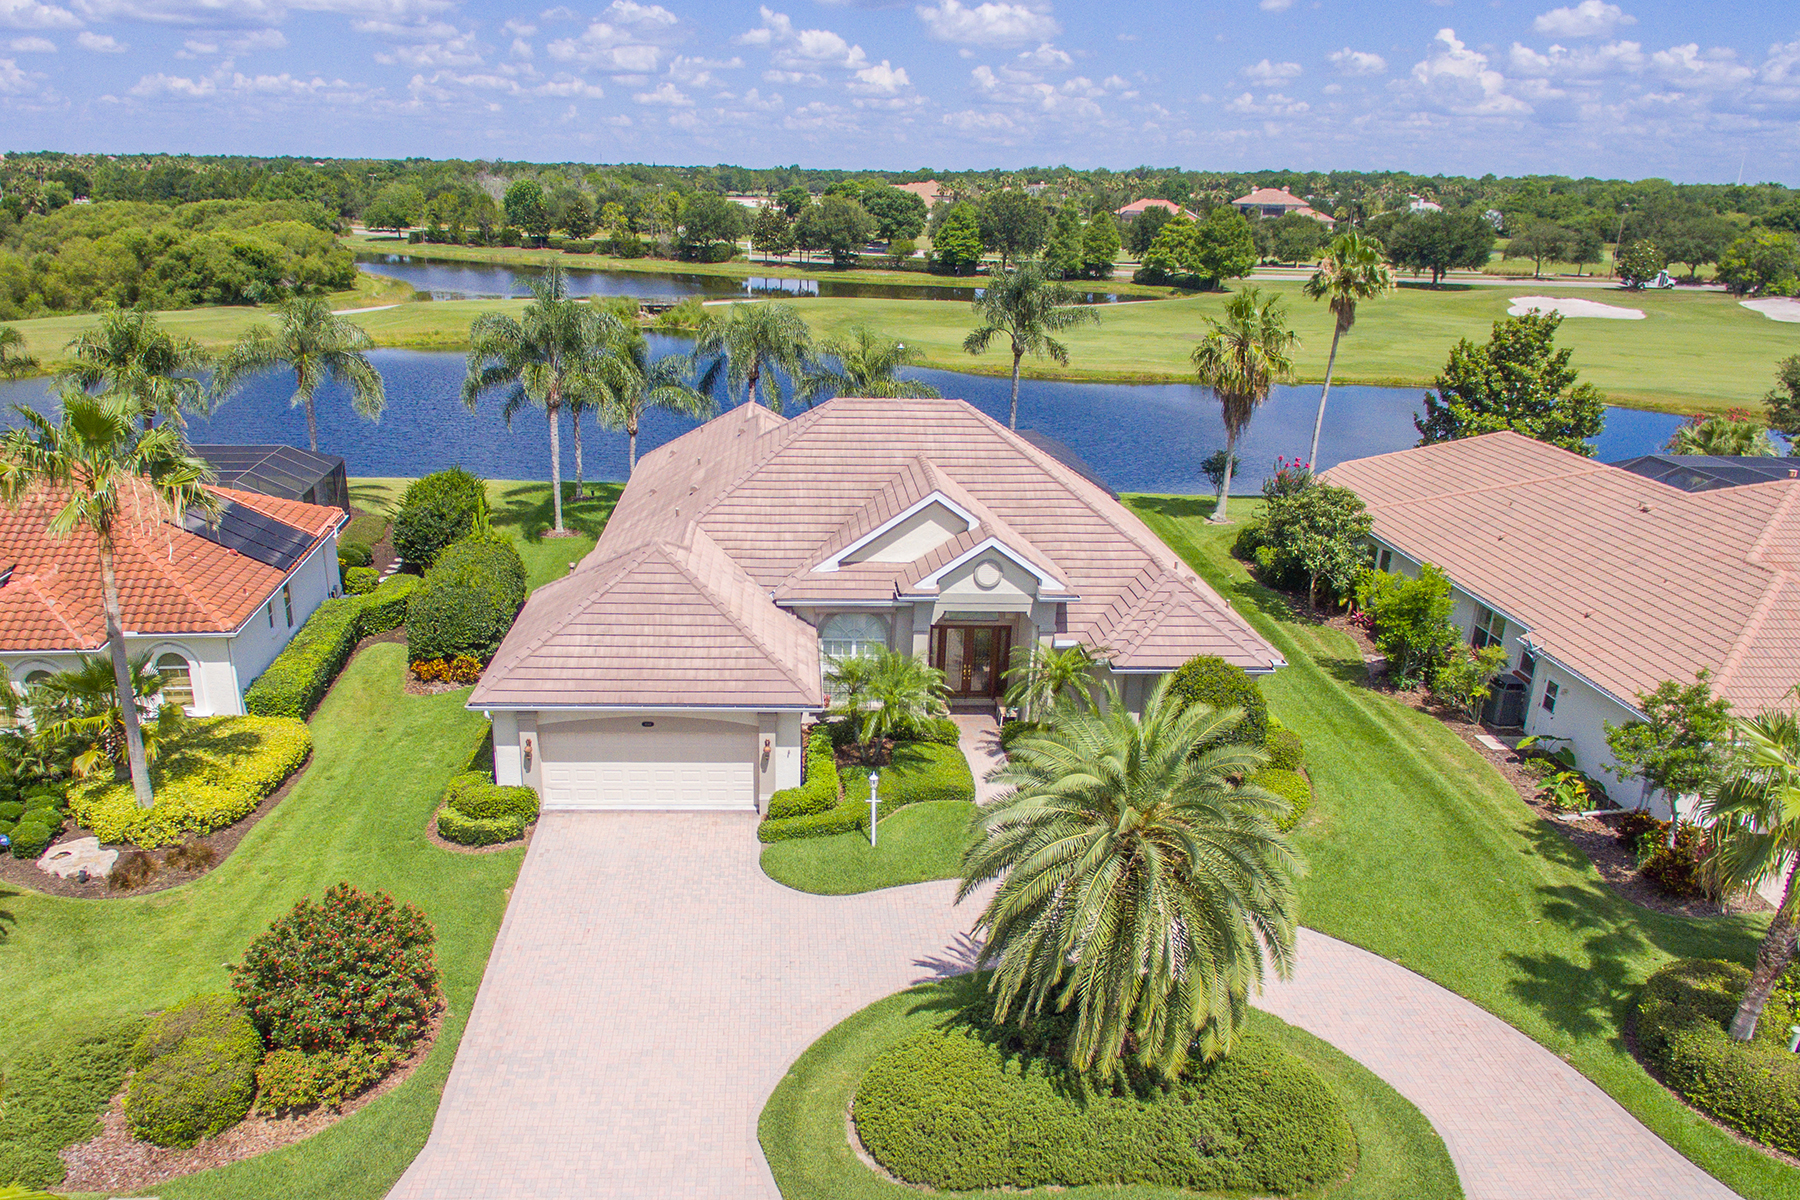 Single Family Home for Sale at LAKEWOOD RANCH COUNTRY CLUB VILLAGE 8044 Royal Birkdale Cir Lakewood Ranch, Florida, 34202 United States